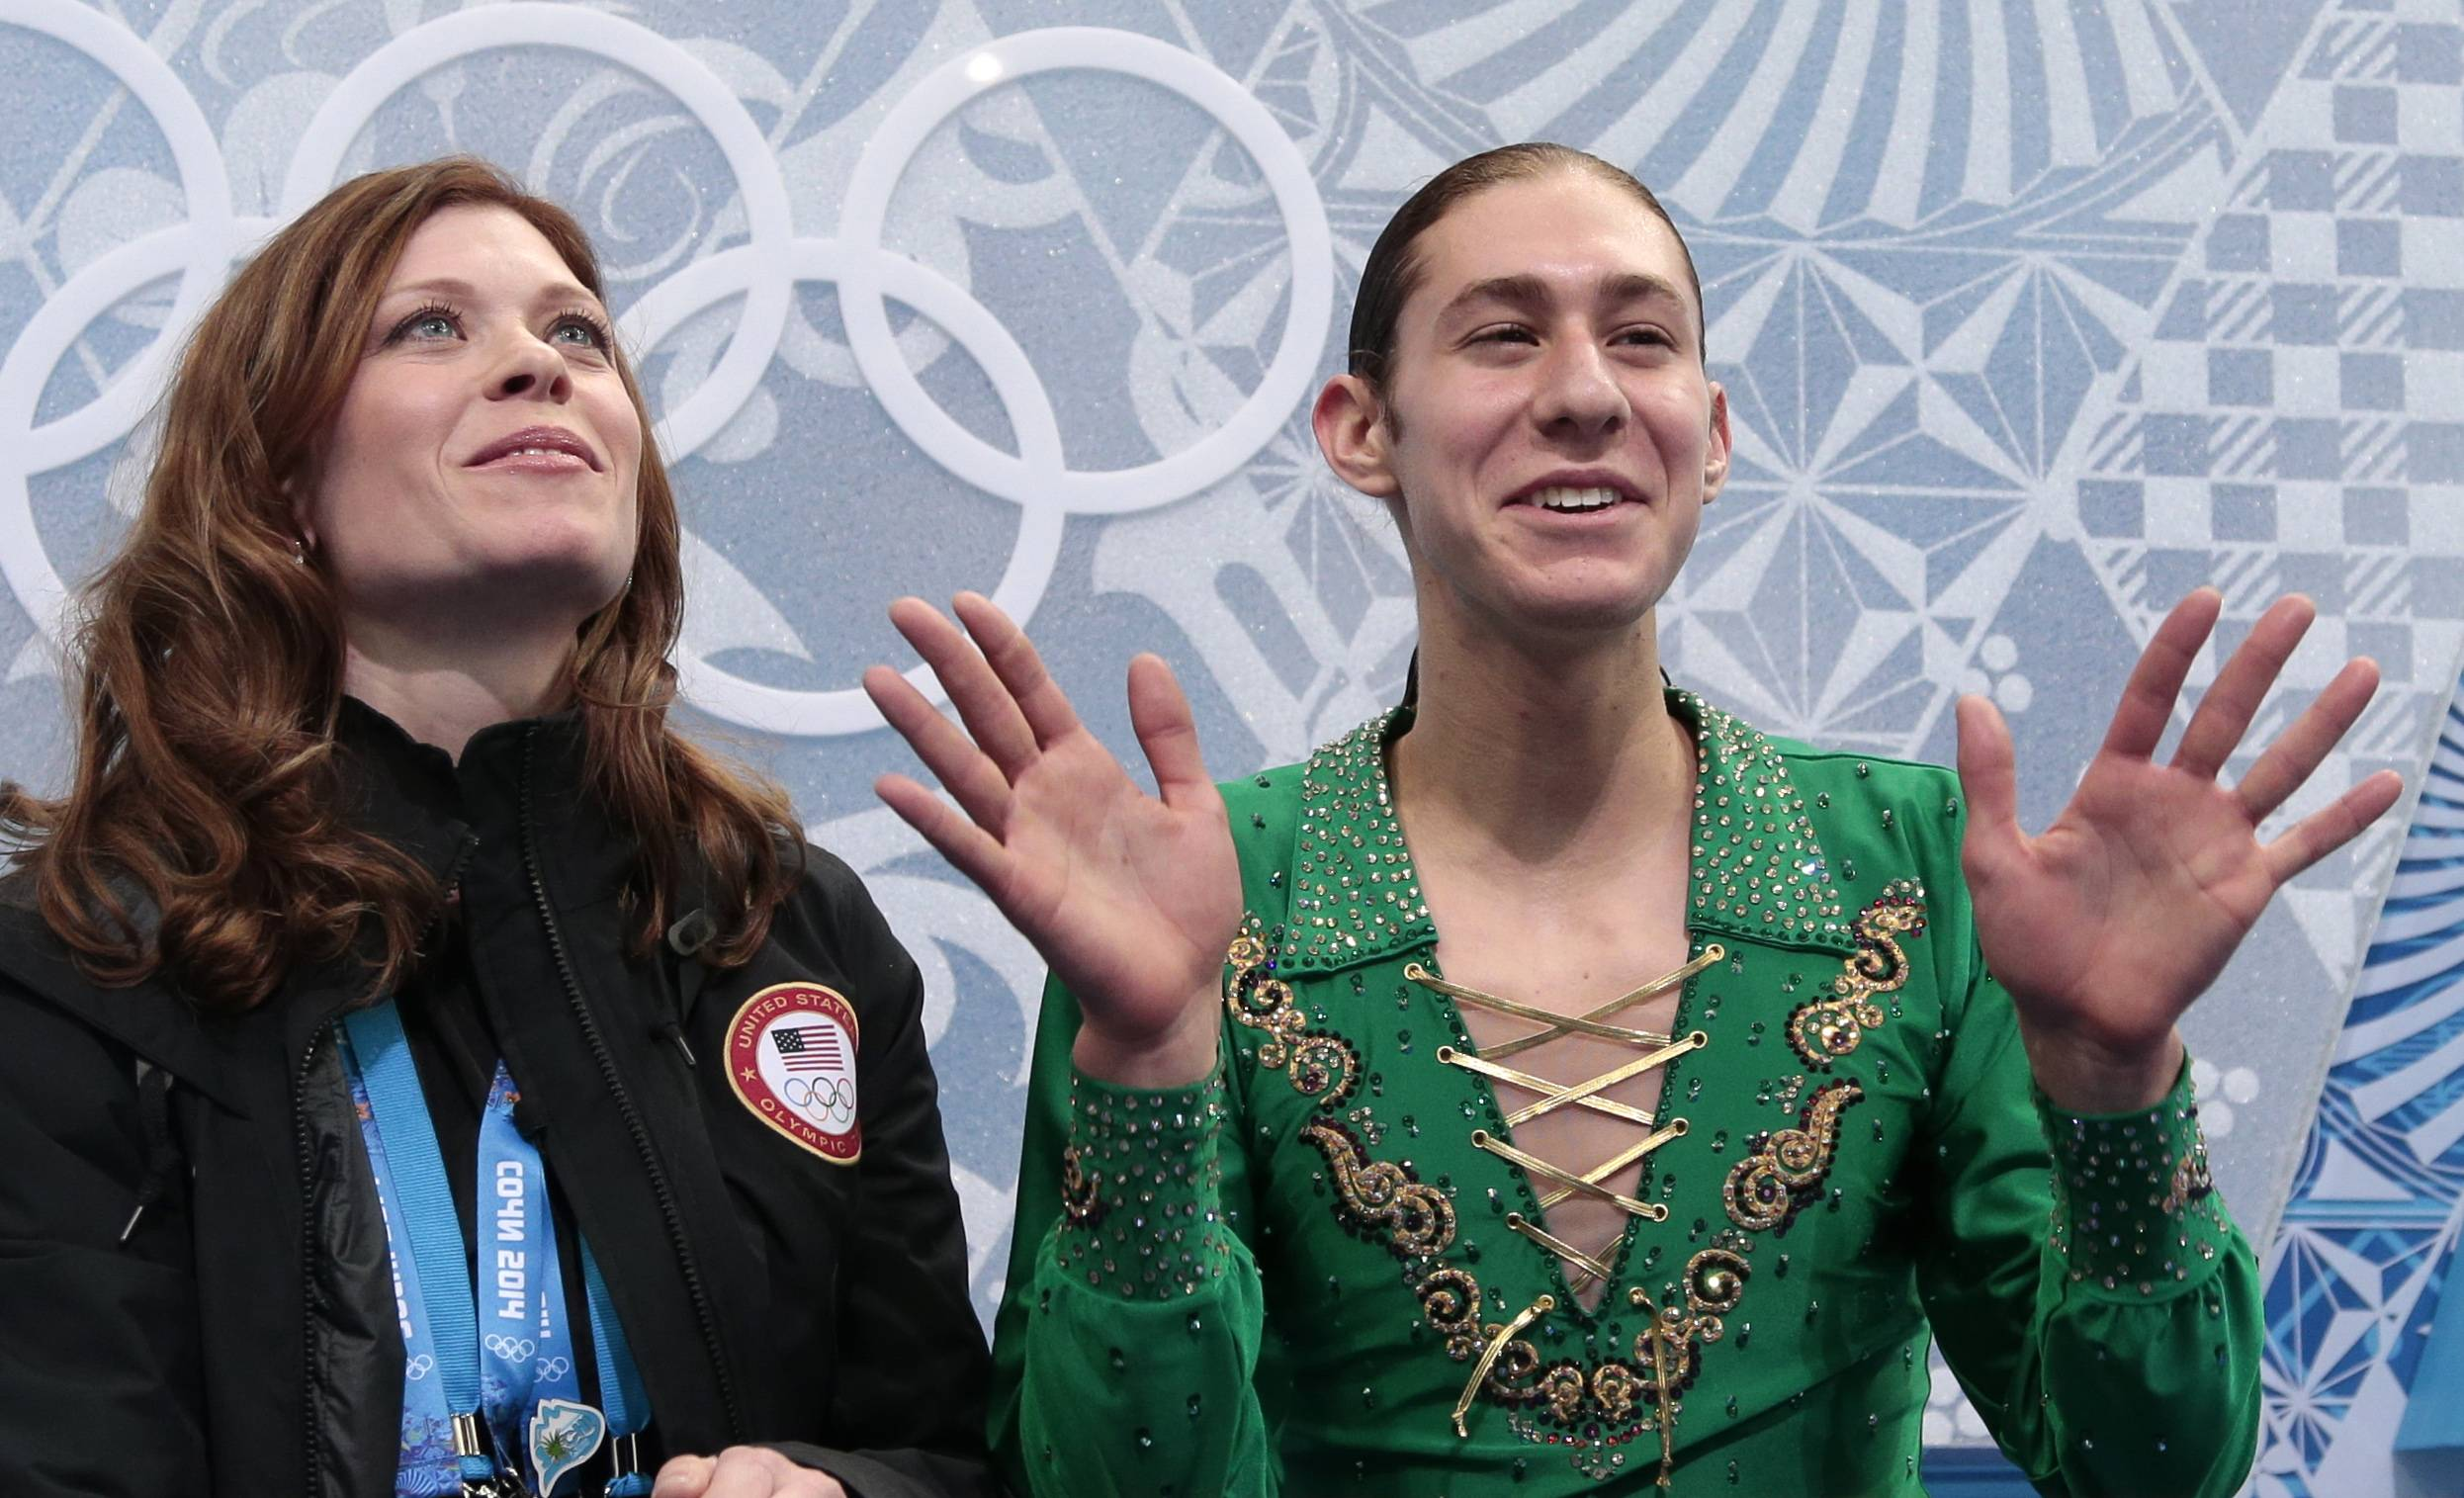 Jason Brown of the United States, left, waves to spectators as he waits in the results area alongside his coach Kori Ade after the men's free skate figure skating final.